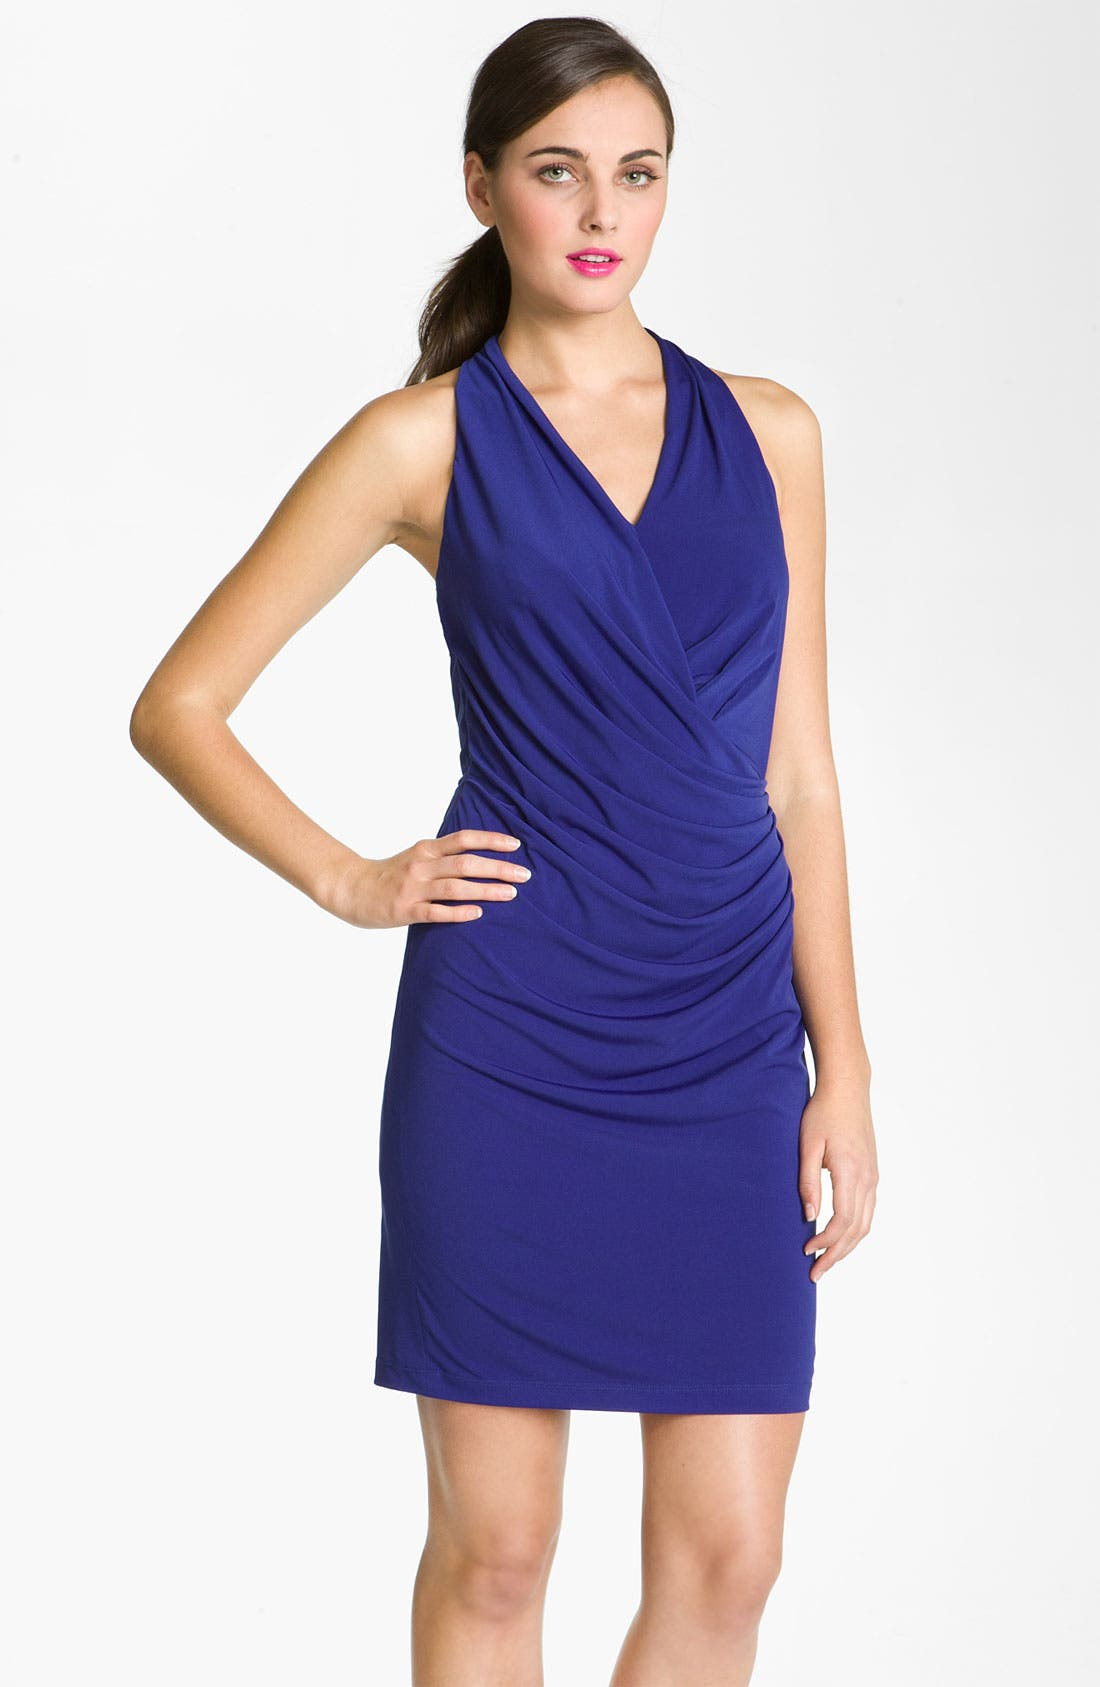 Alternate Image 1 Selected - Suzi Chin for Maggy Boutique Ruched Racer Back Jersey Dress